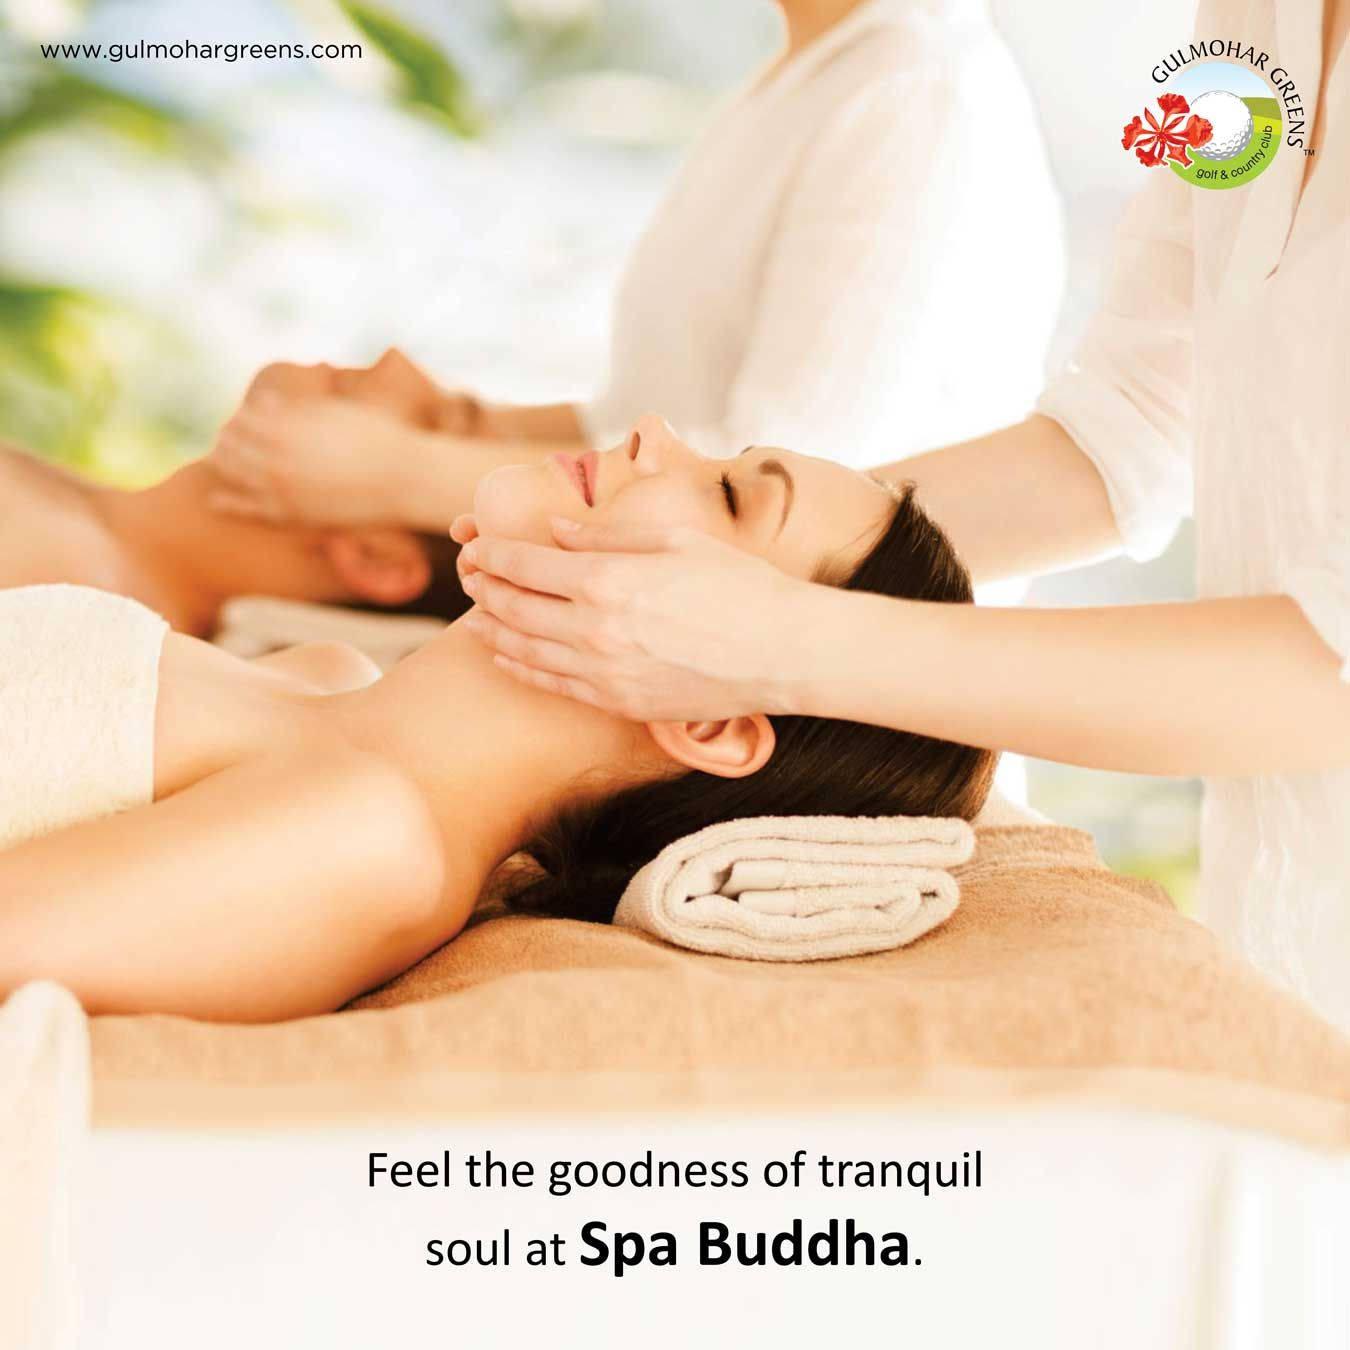 Release the stress in you in the most lavish way and give your soul utmost peace at Spa Buddha.  Visit: www.gulmohargreens.com/